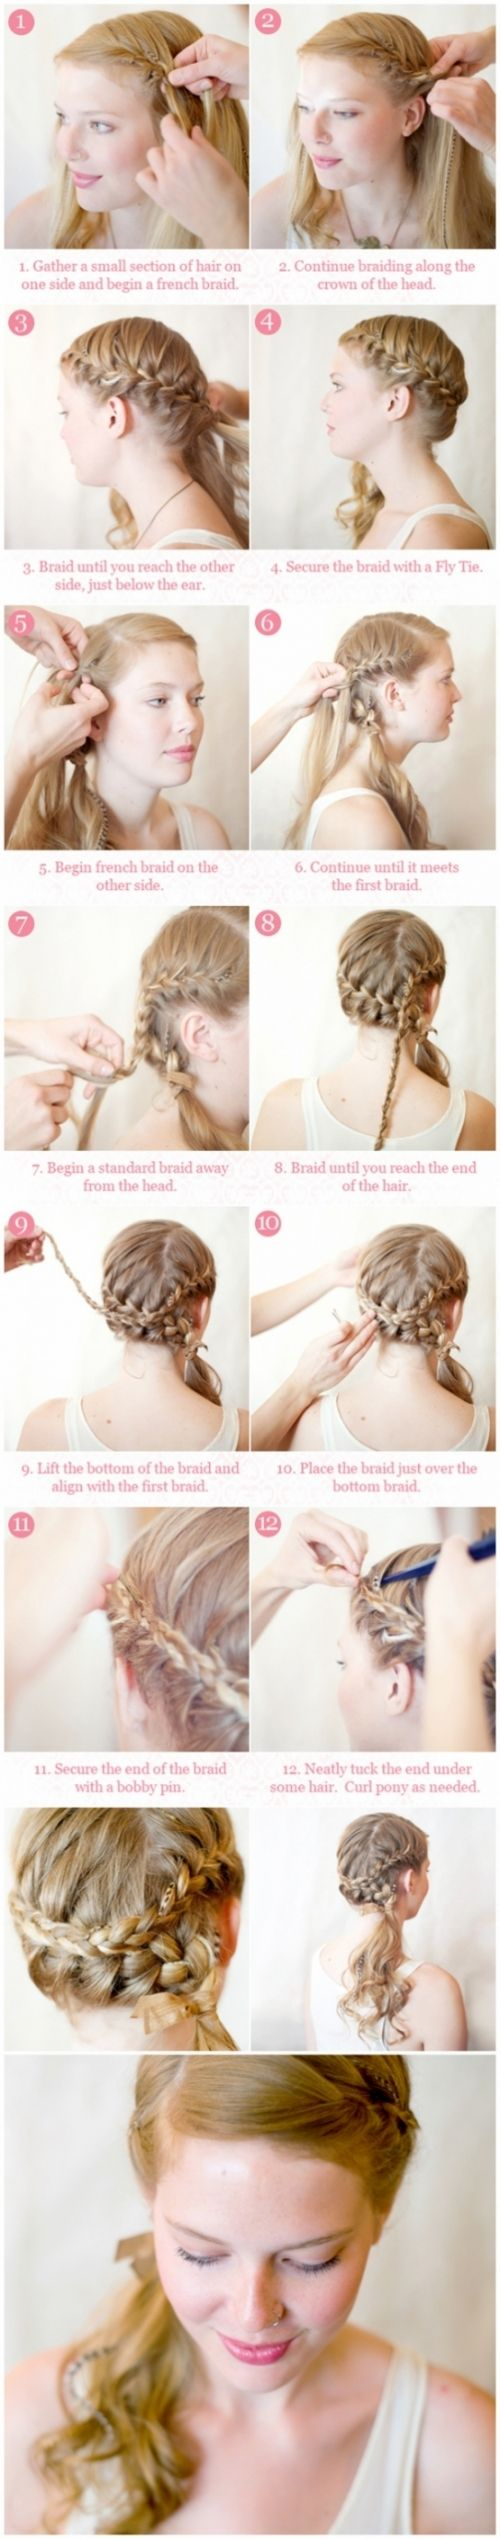 http://www.hairstylem.com/data/media/368/Place-the-braid-just-step-by-step-hair-tutorials-517033827d685.jpg